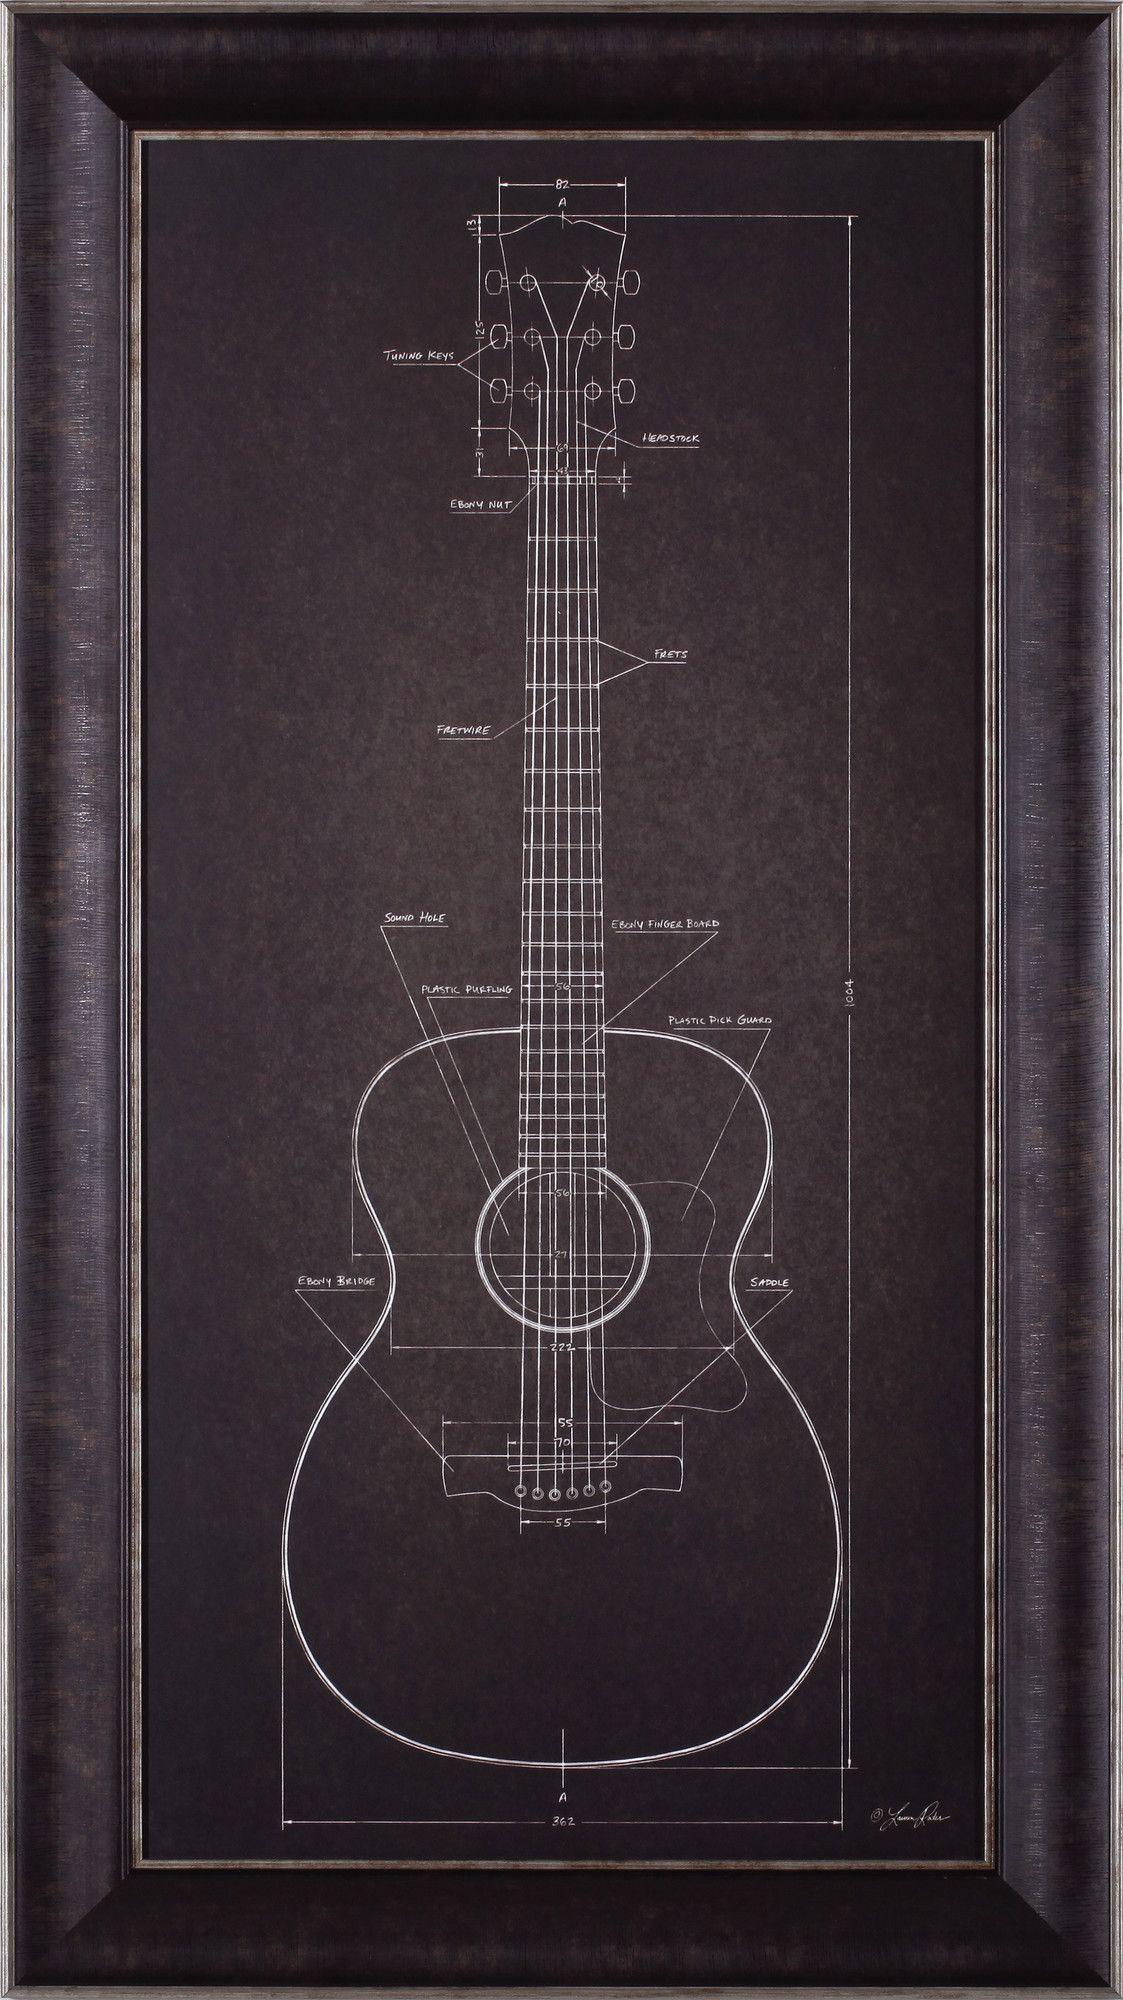 Acoustic guitar blueprint by lauren rader framed graphic art home acoustic guitar blueprint by lauren rader framed graphic art malvernweather Image collections